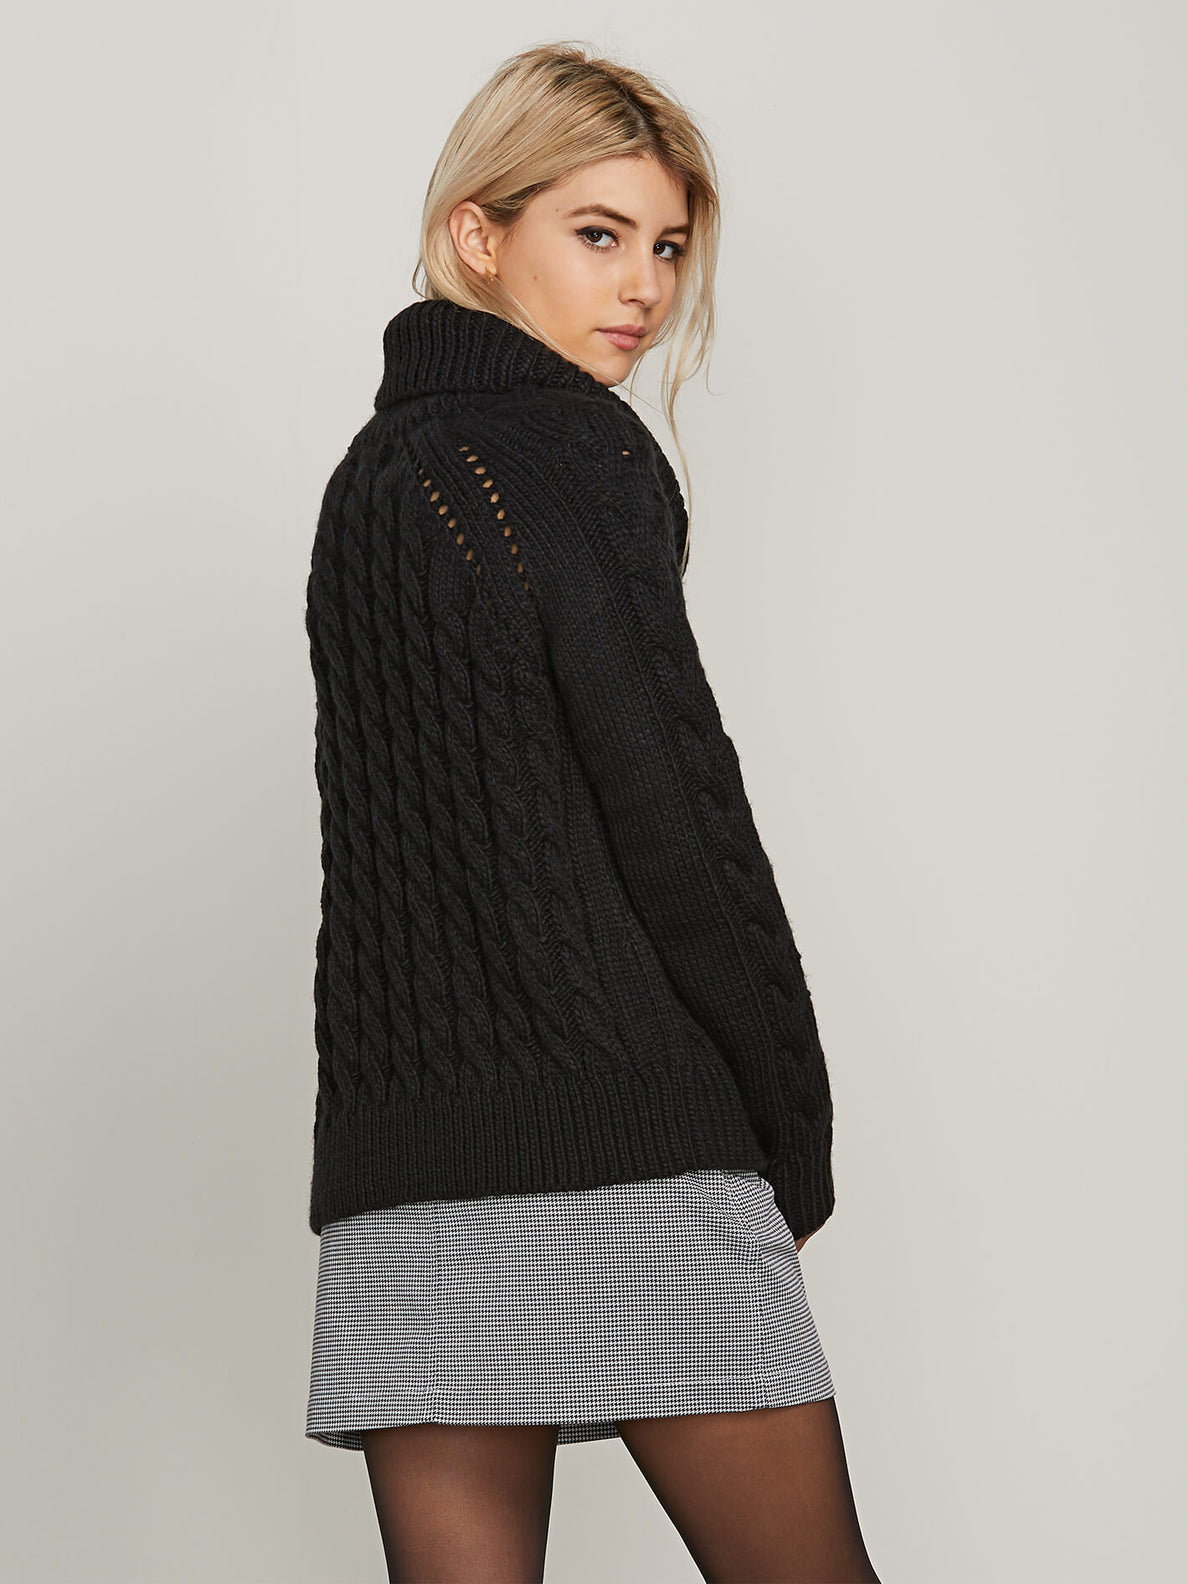 Snooders Sweater In Black, Alternate View